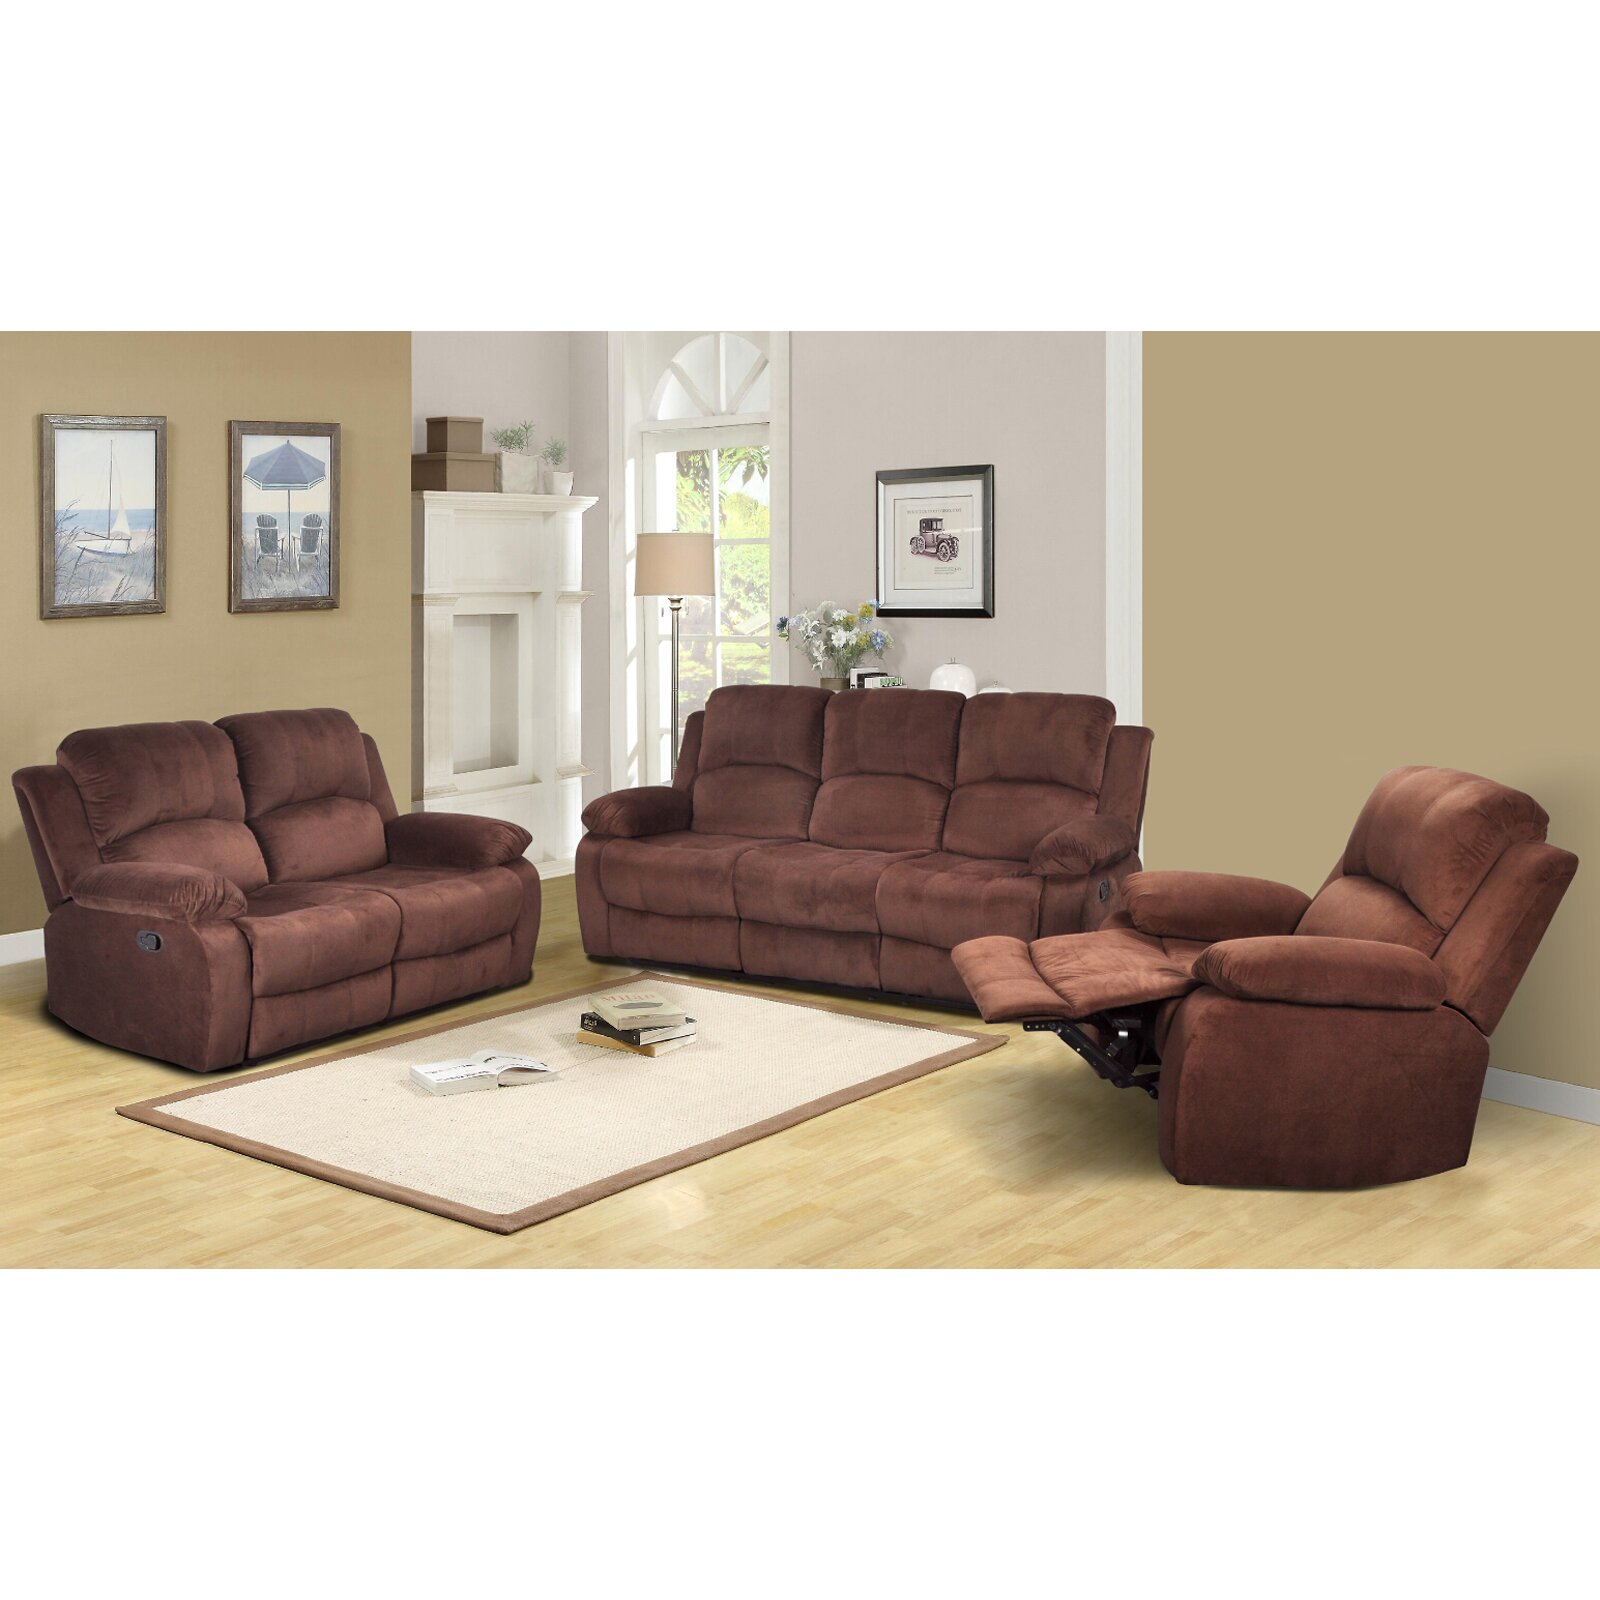 Beverly fine furniture denver 3 piece microfiber reclining Reclining living room furniture